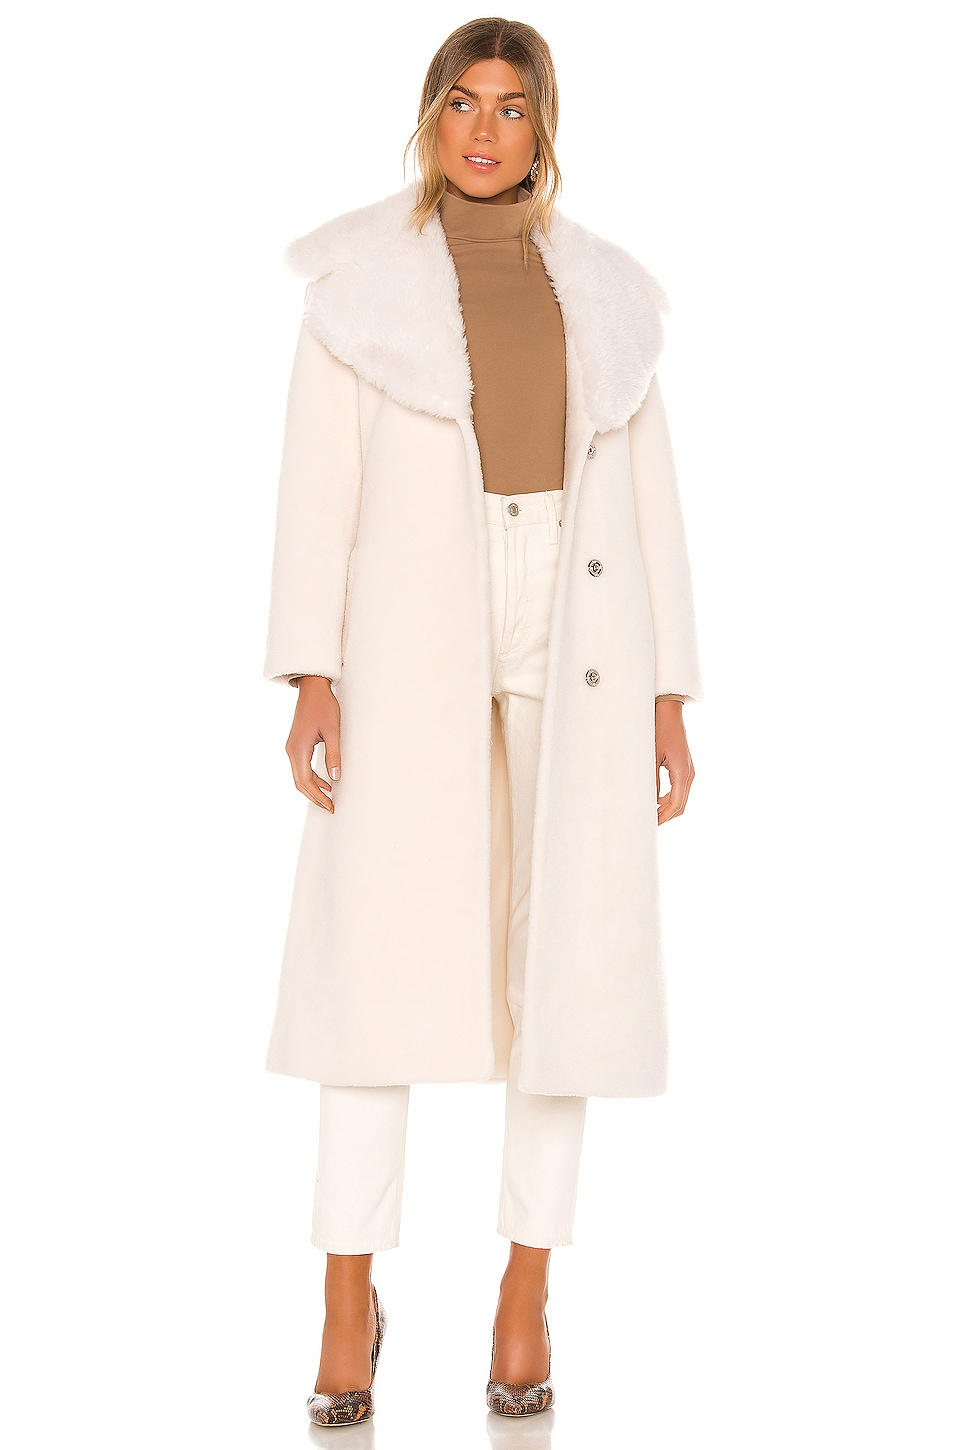 RAVN Love Coat in White